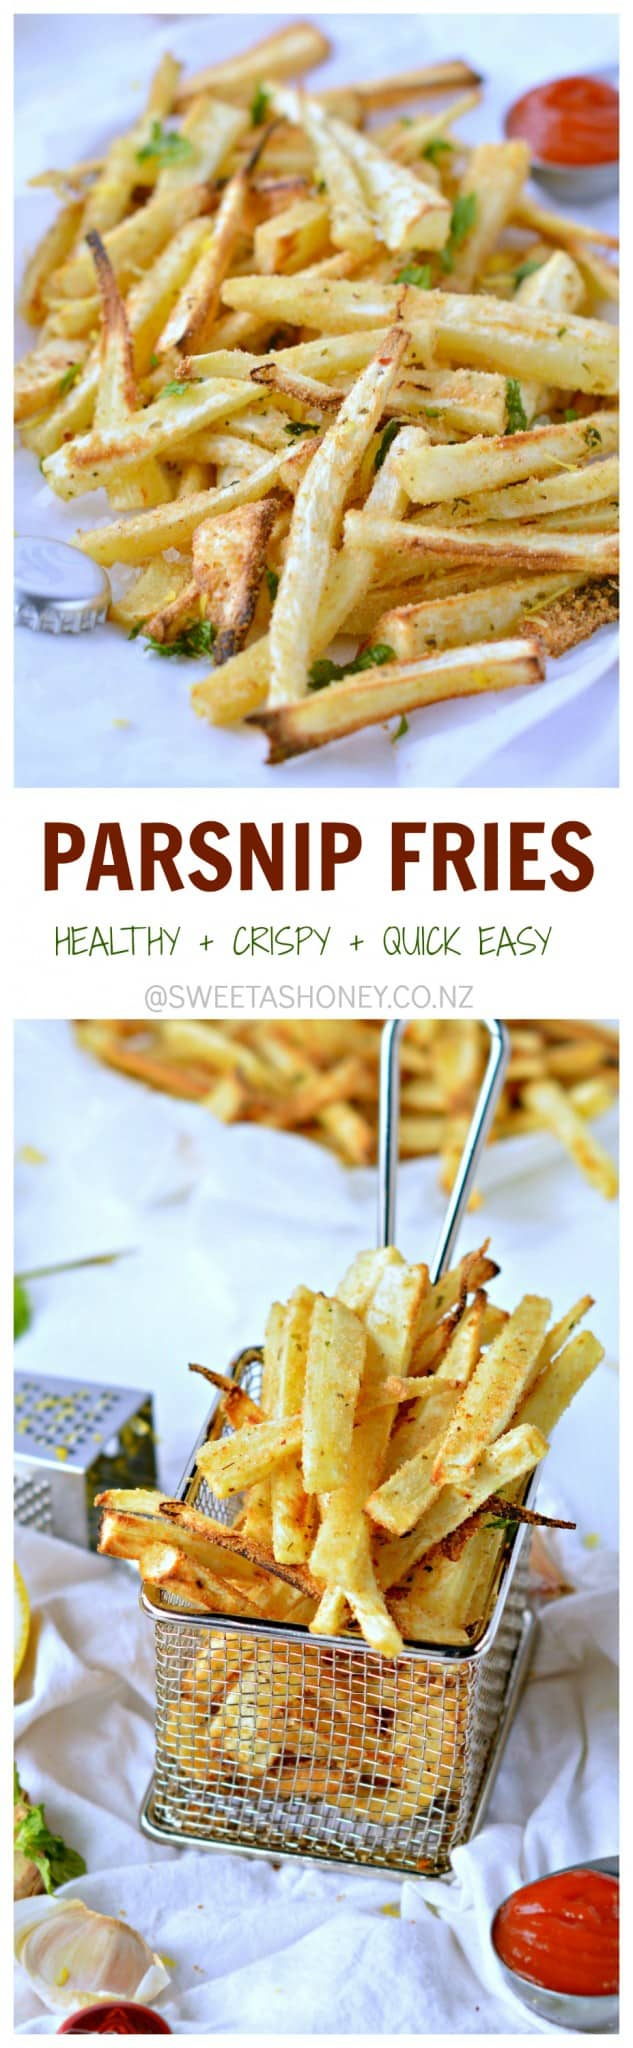 baked parsnip fries